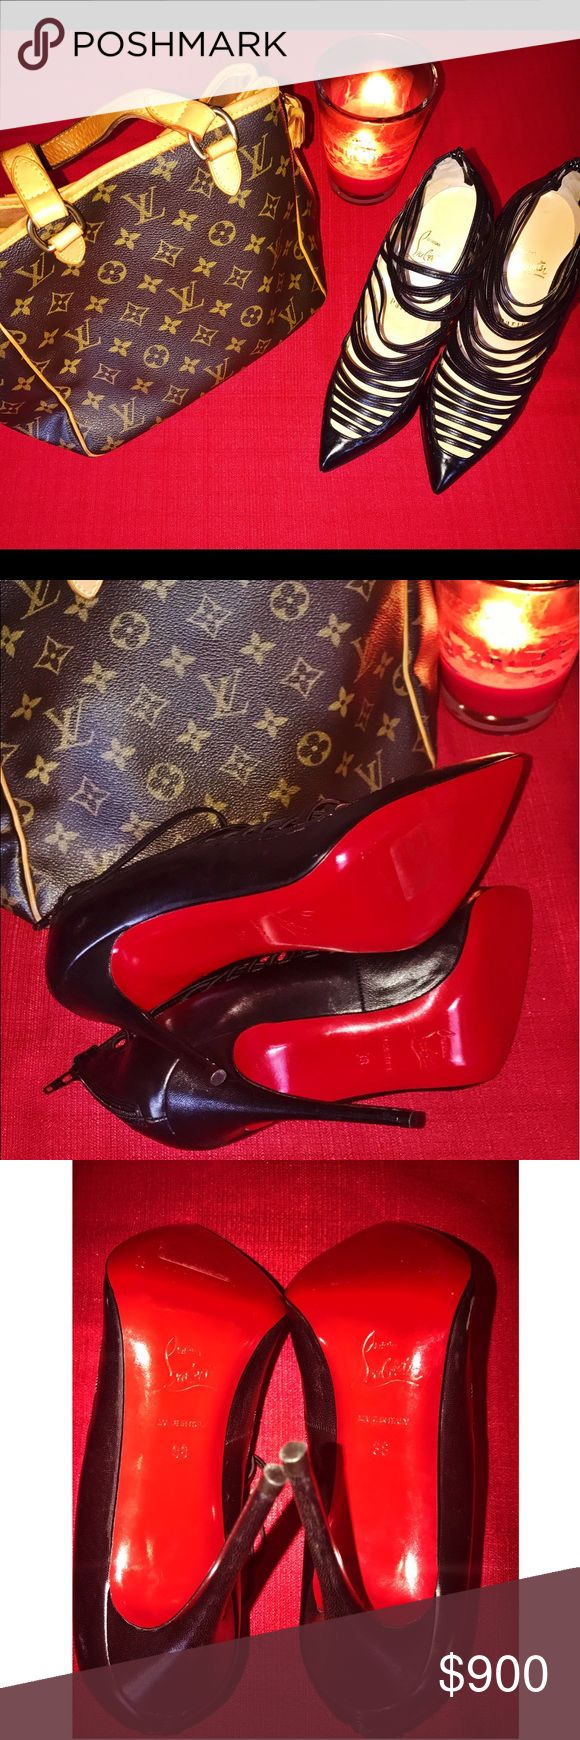 Authentic Christian Louboutin red bottom shoes Christian Louboutin red bottom shoes. NWOT ❌ NO TRADES EXCEPT FOR A NEVERFALL IN GREAT CONDITION OR NEW, OR DIAMOND WEDDING SET. 🌺 Christian Louboutin Shoes Heels